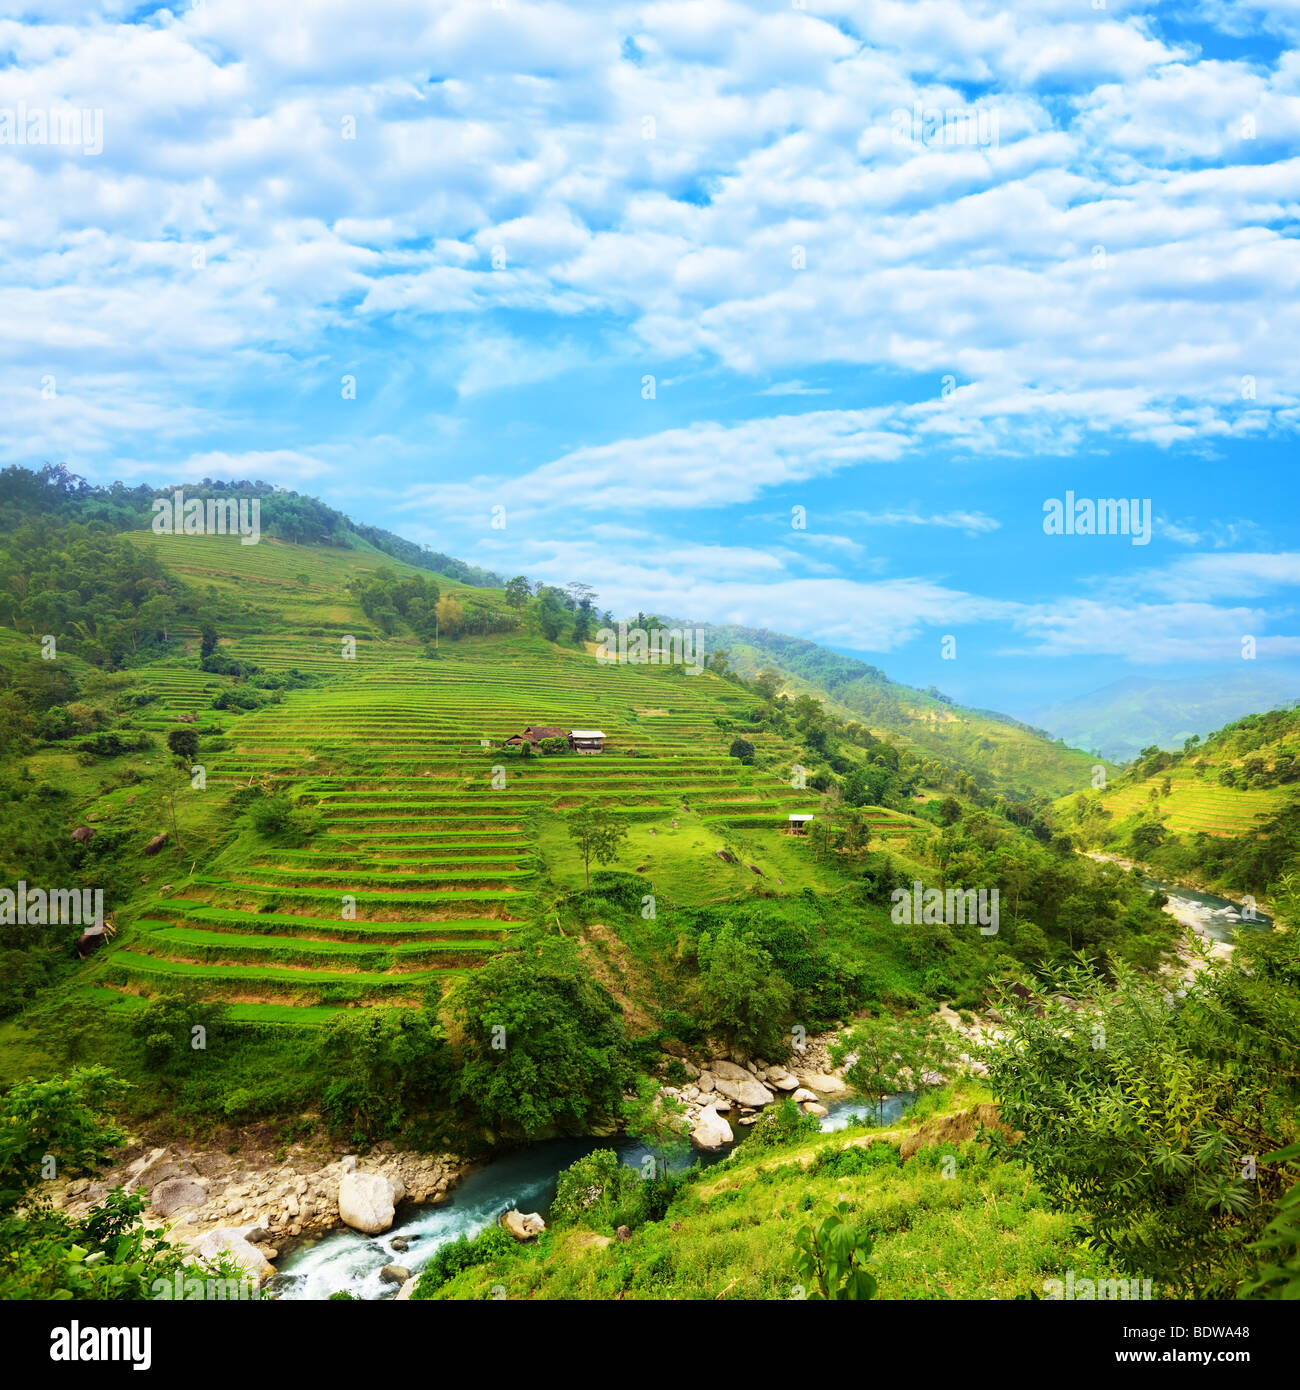 Rice field terraces at nothern Vietnam - Stock Image